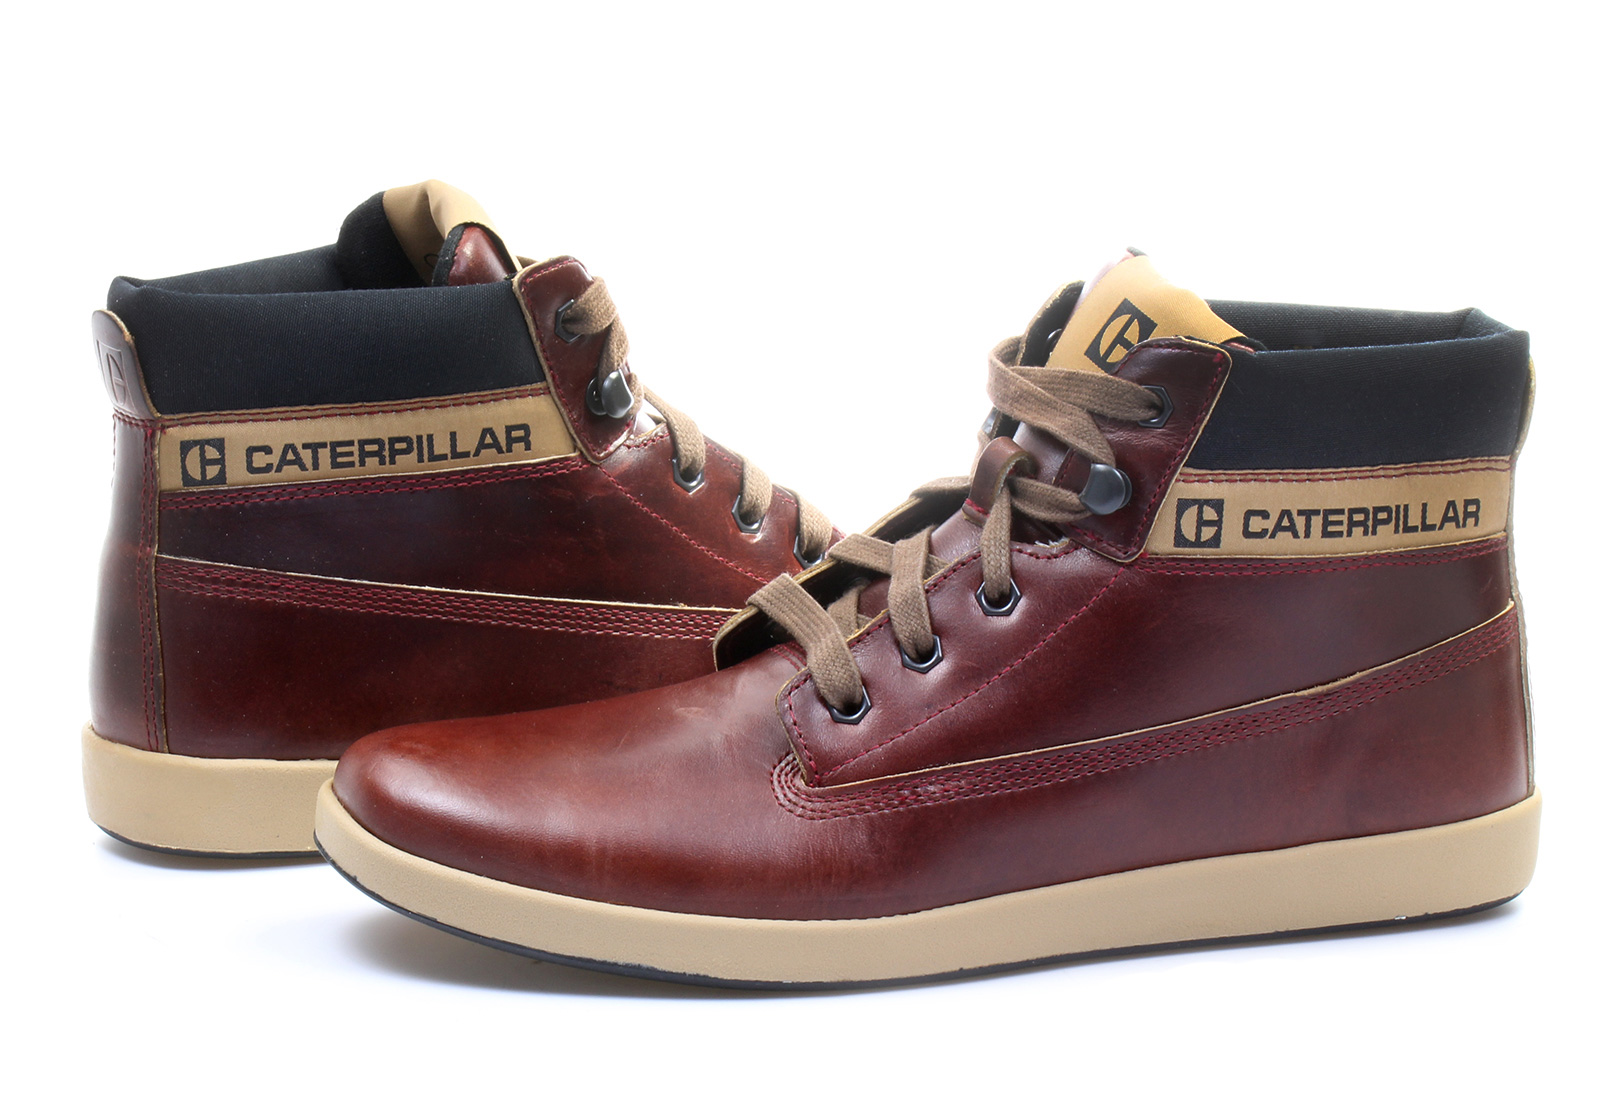 Cat Shoes Poe 715889 Bld Online Shop For Sneakers